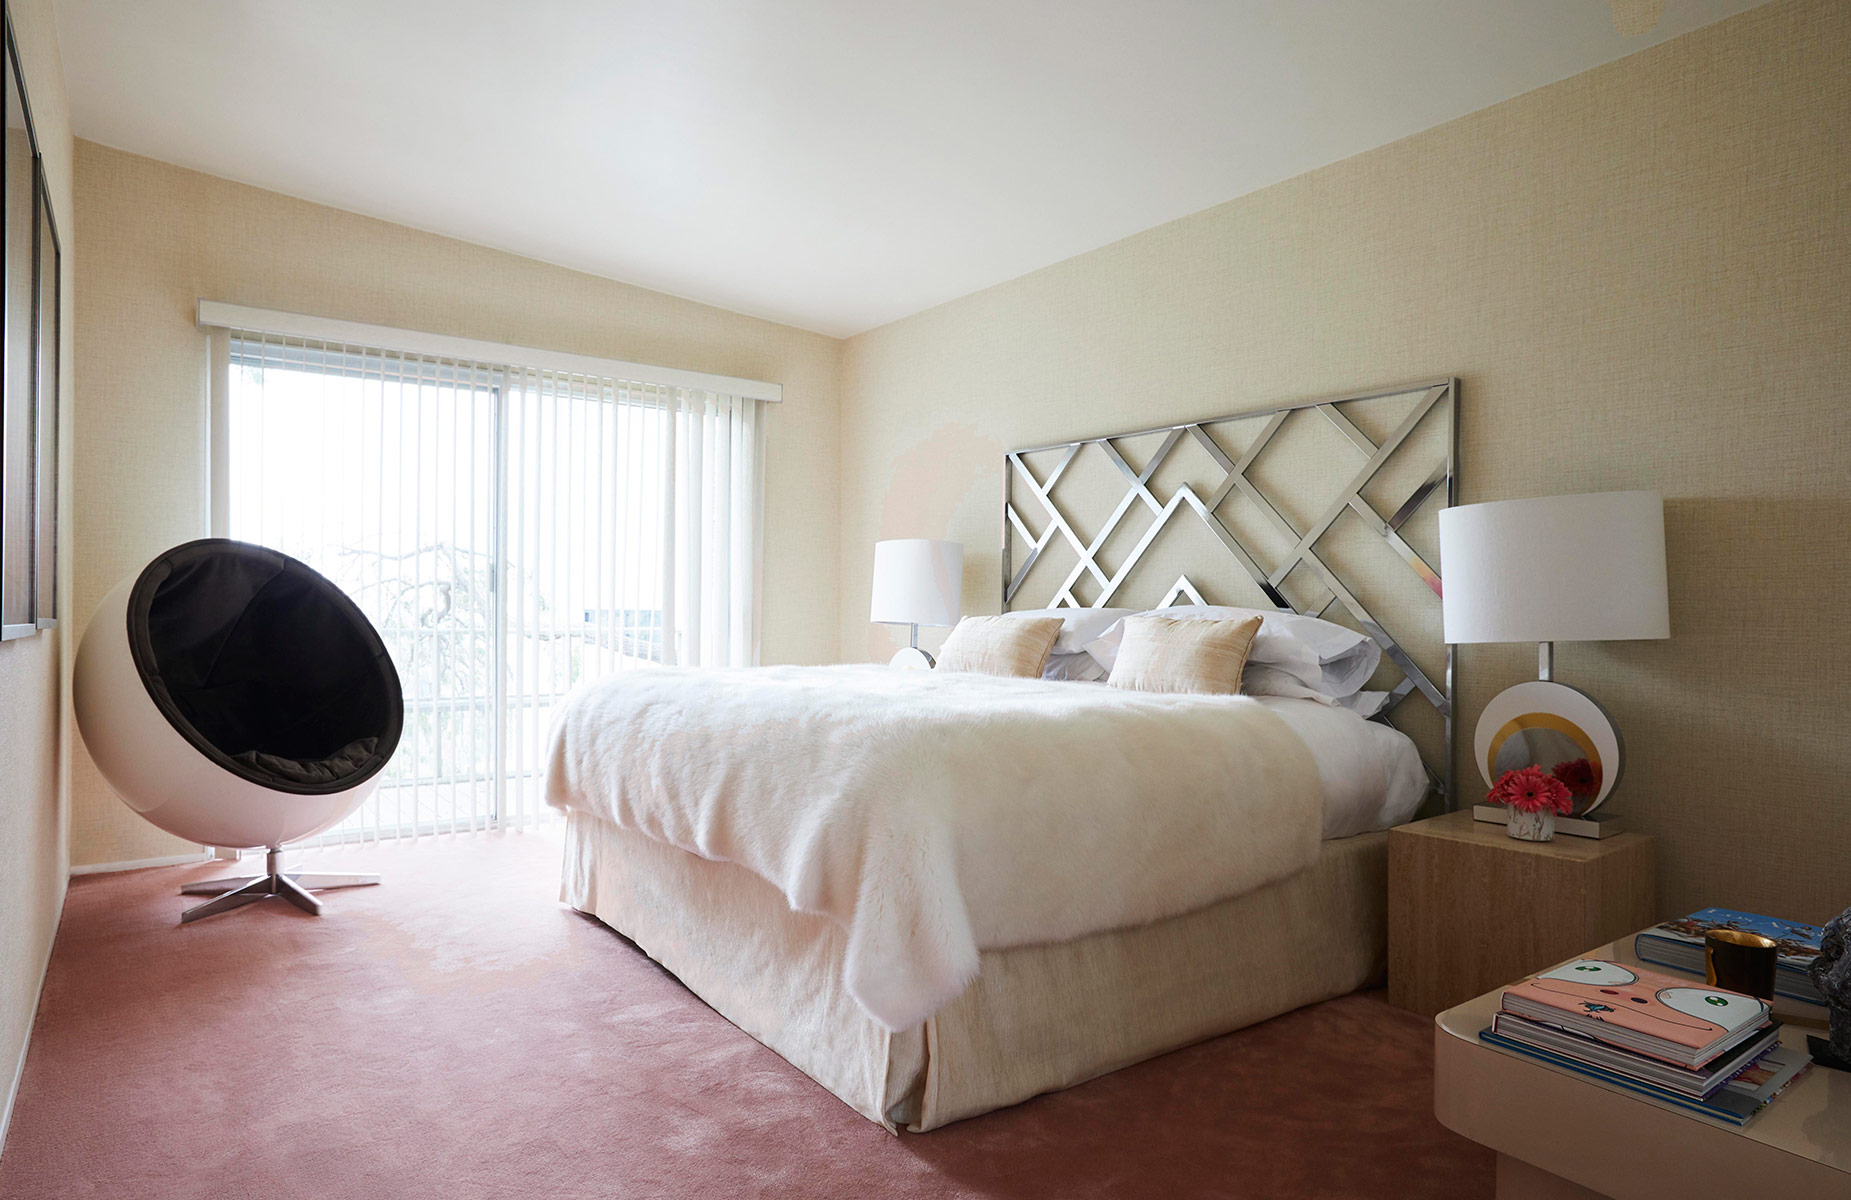 LA Bedroom Interior Design Caroline Legrand